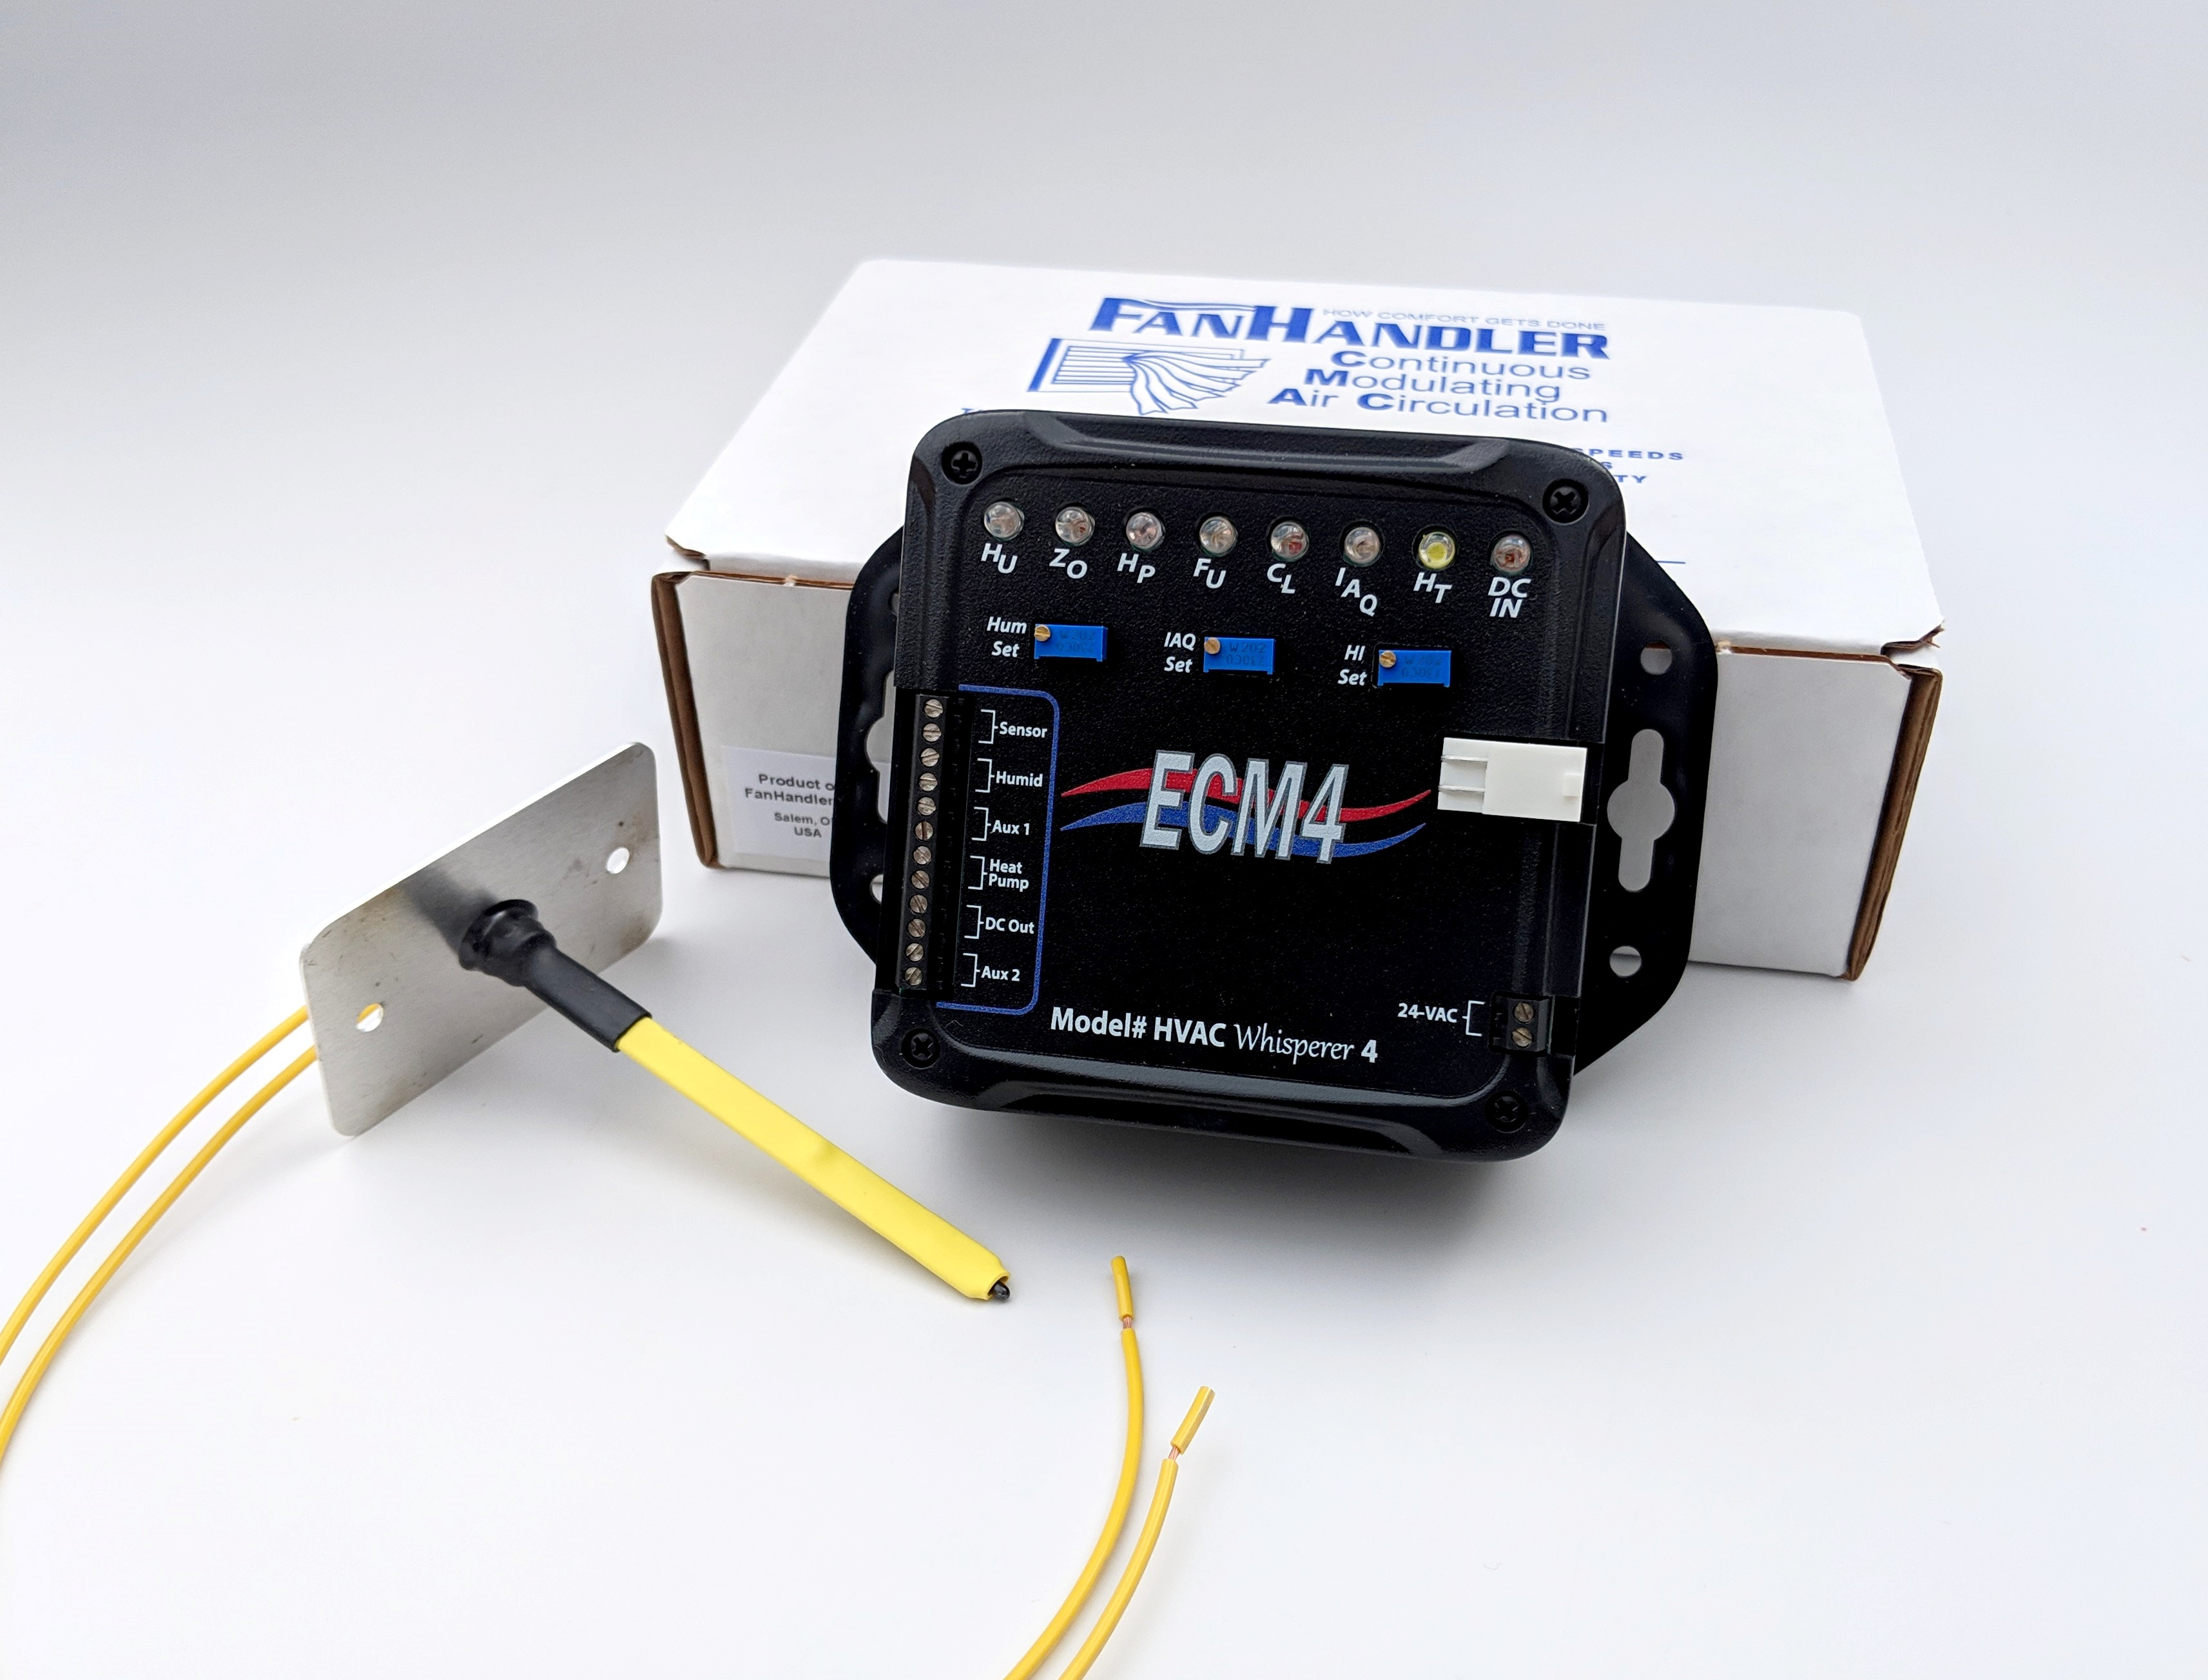 FanHandler - ECM 4 Package